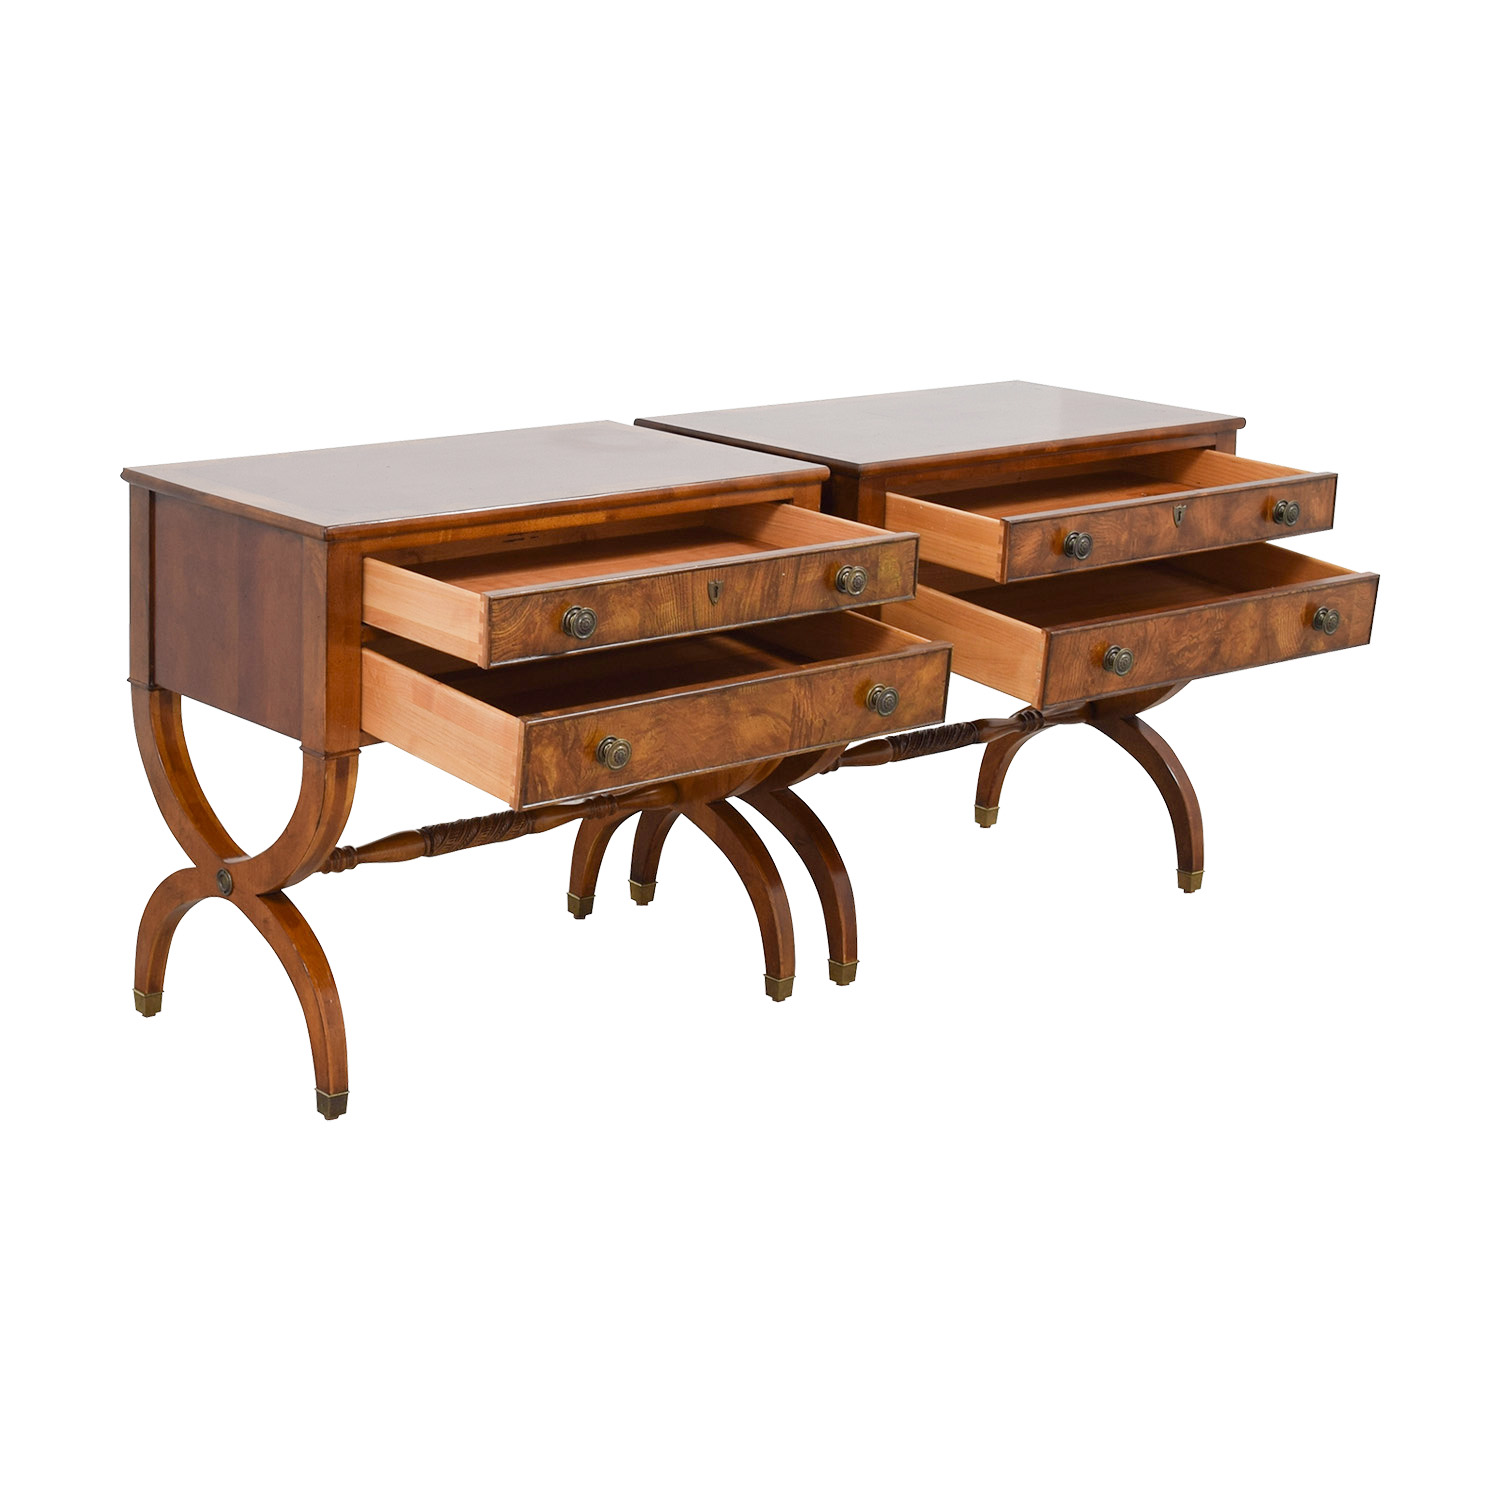 Ethan Allen Connolly Two-Drawer Night Tables / Tables